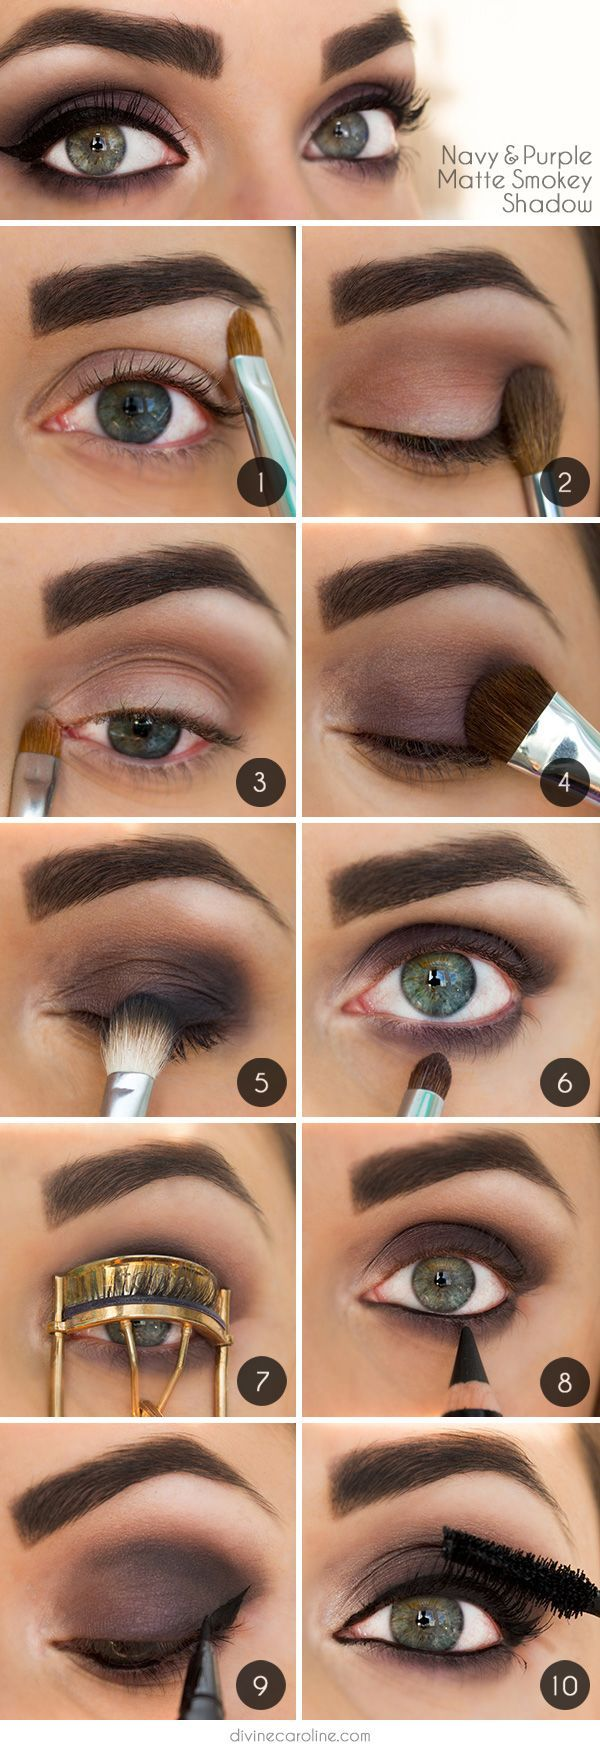 Eye Makeup Must-Try: Navy & Purple Matte Smoky Shadow | Ivy Boyd of Wake Up For Makeup for Divine Caroline